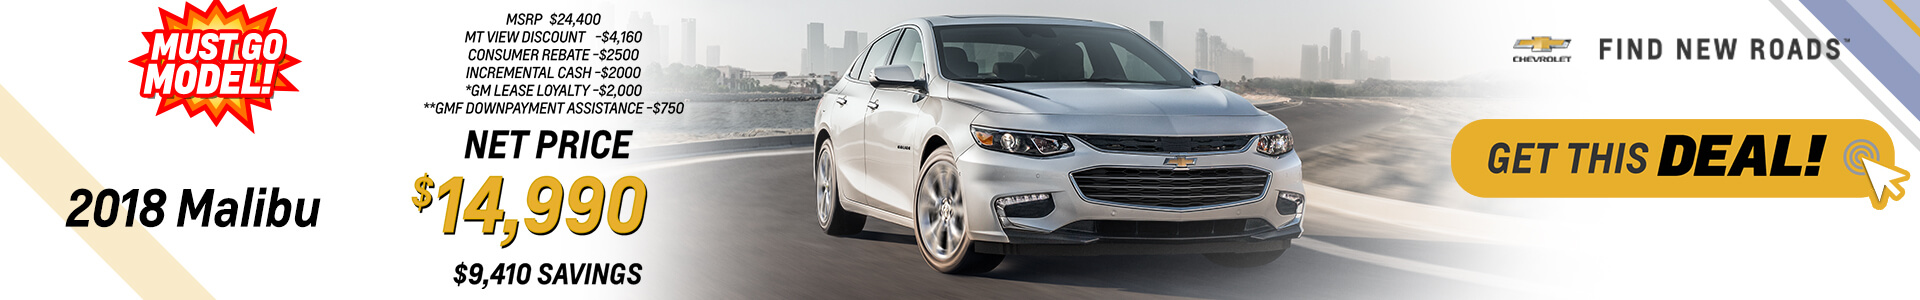 2018 Chevy Malibu Purchase for $14,990